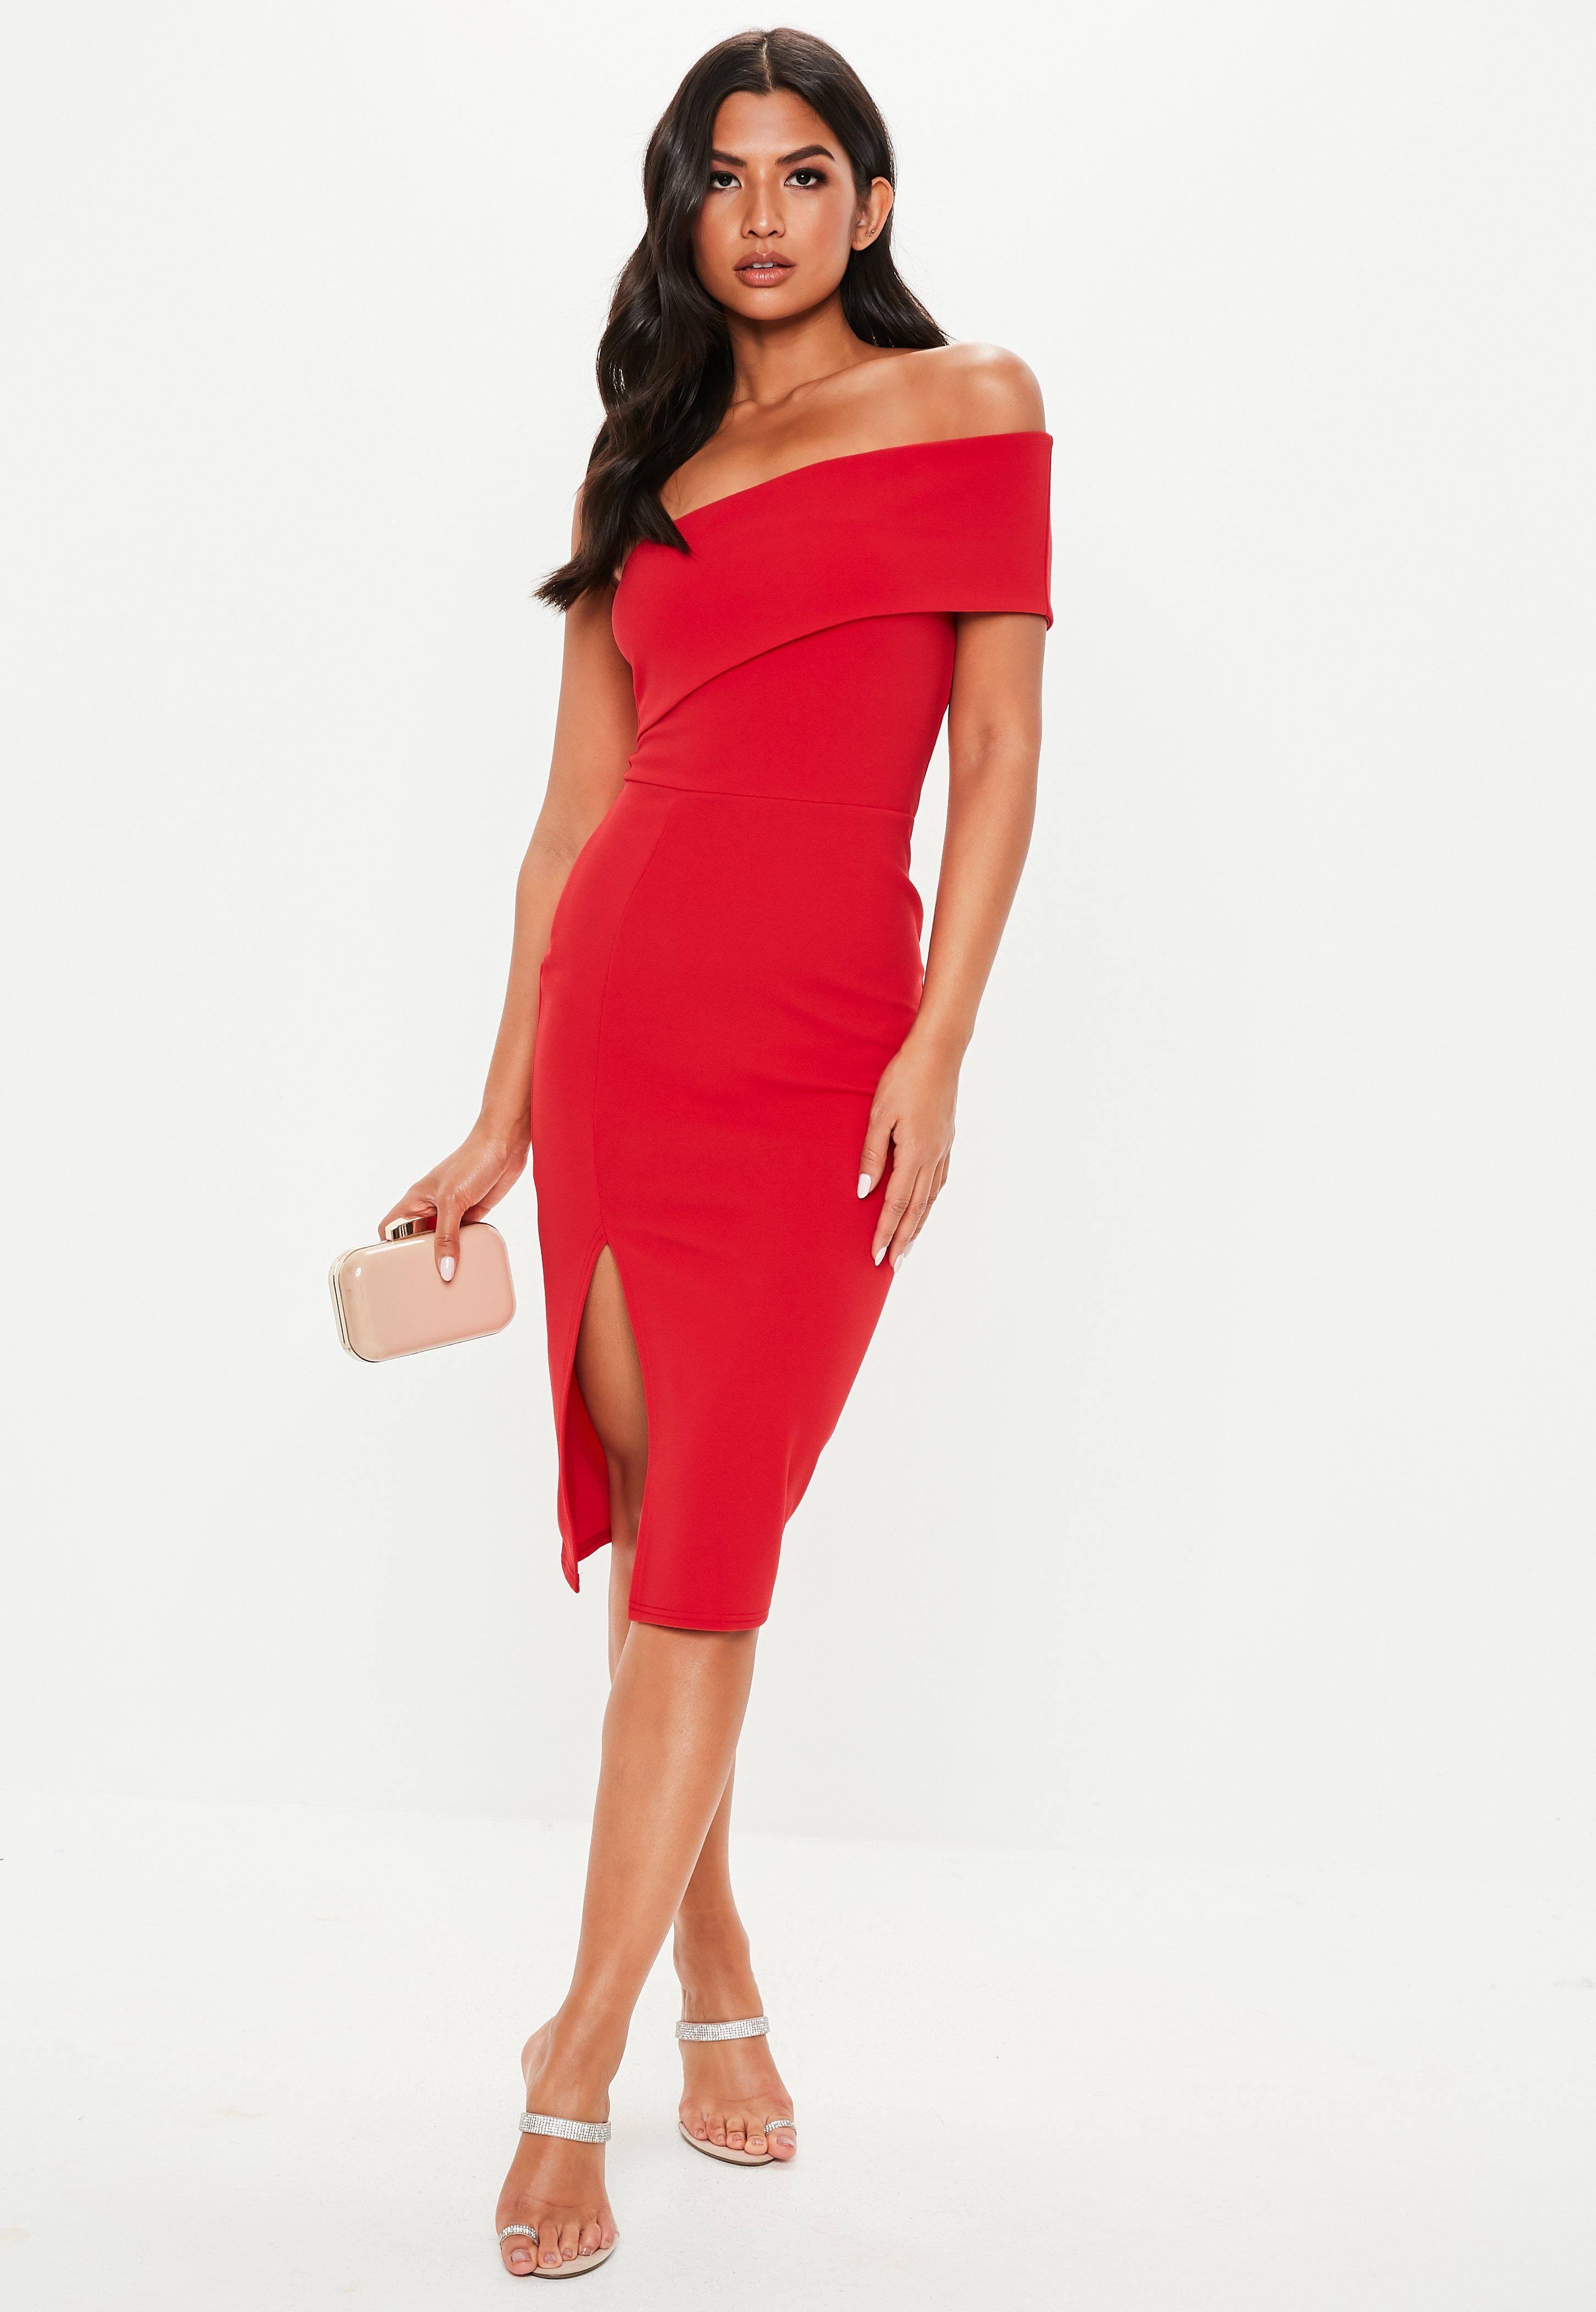 ec4ff1ad6c Bodycon Dresses | Tight & Fitted Dresses - Missguided Australia